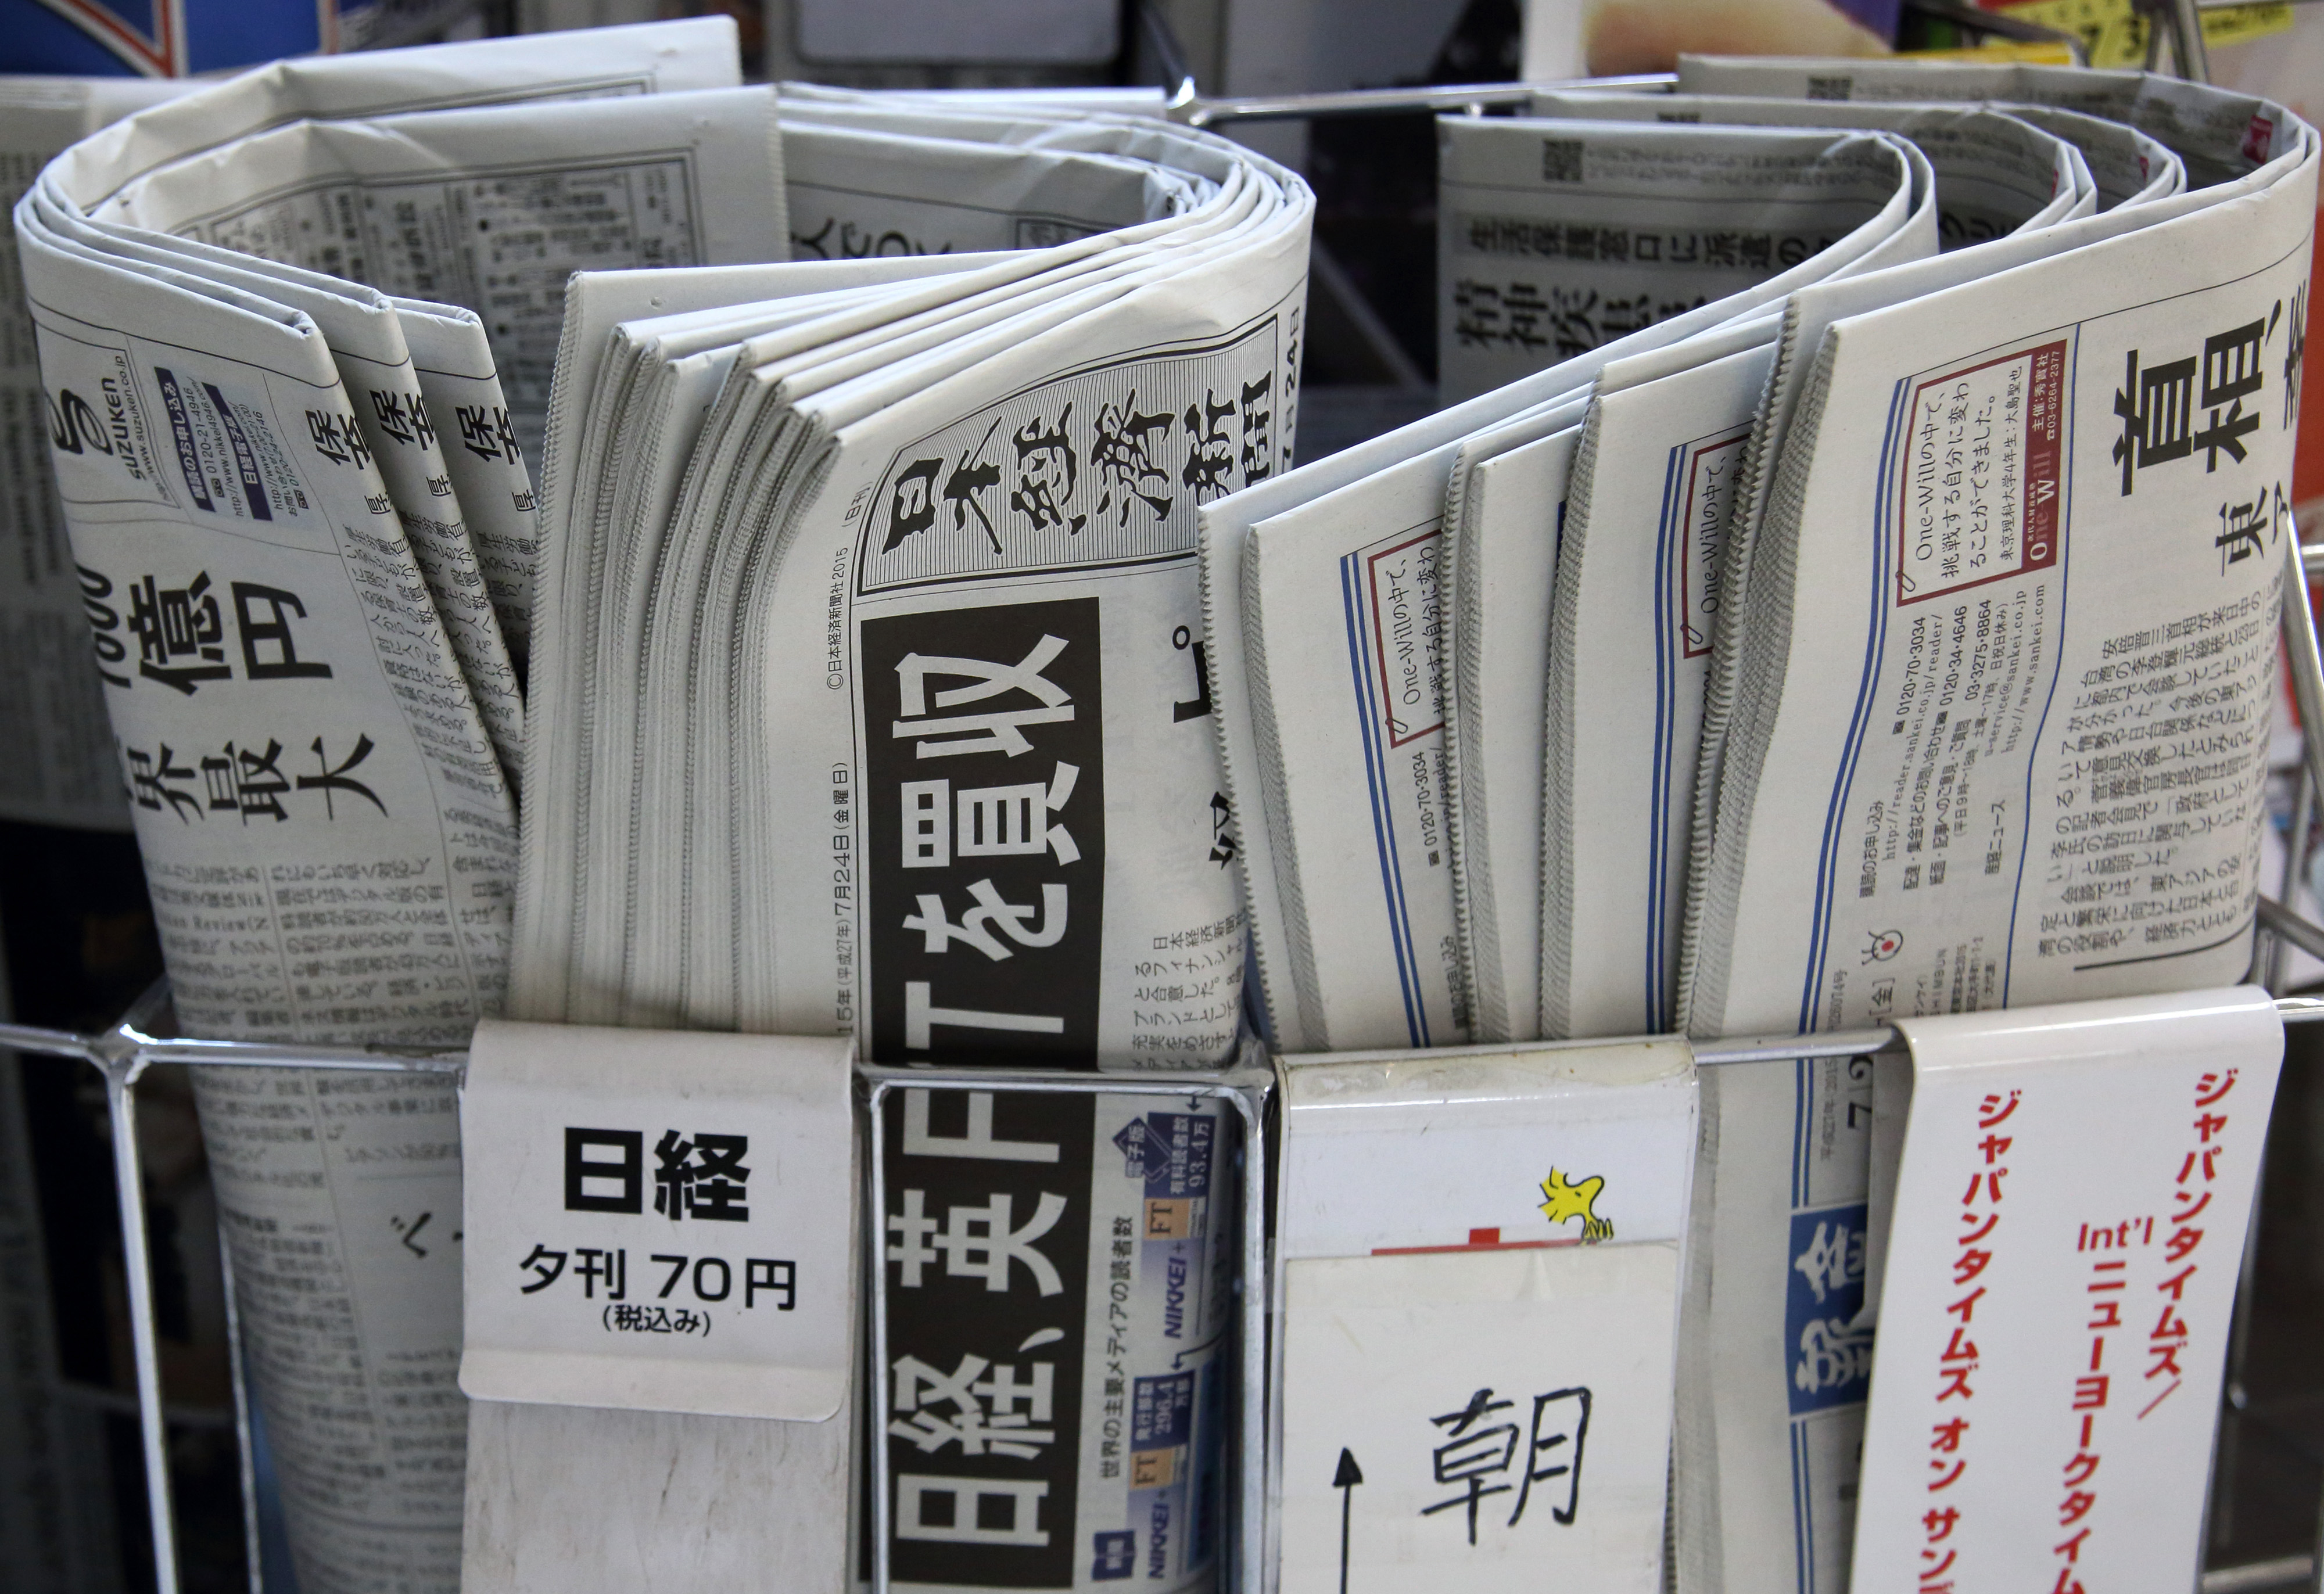 Newspapers, including the Nikkei (center), are displayed for sale in Tokyo on Friday. The headline set in black says 'Nikkei buys British FT.' | BLOOMBERG